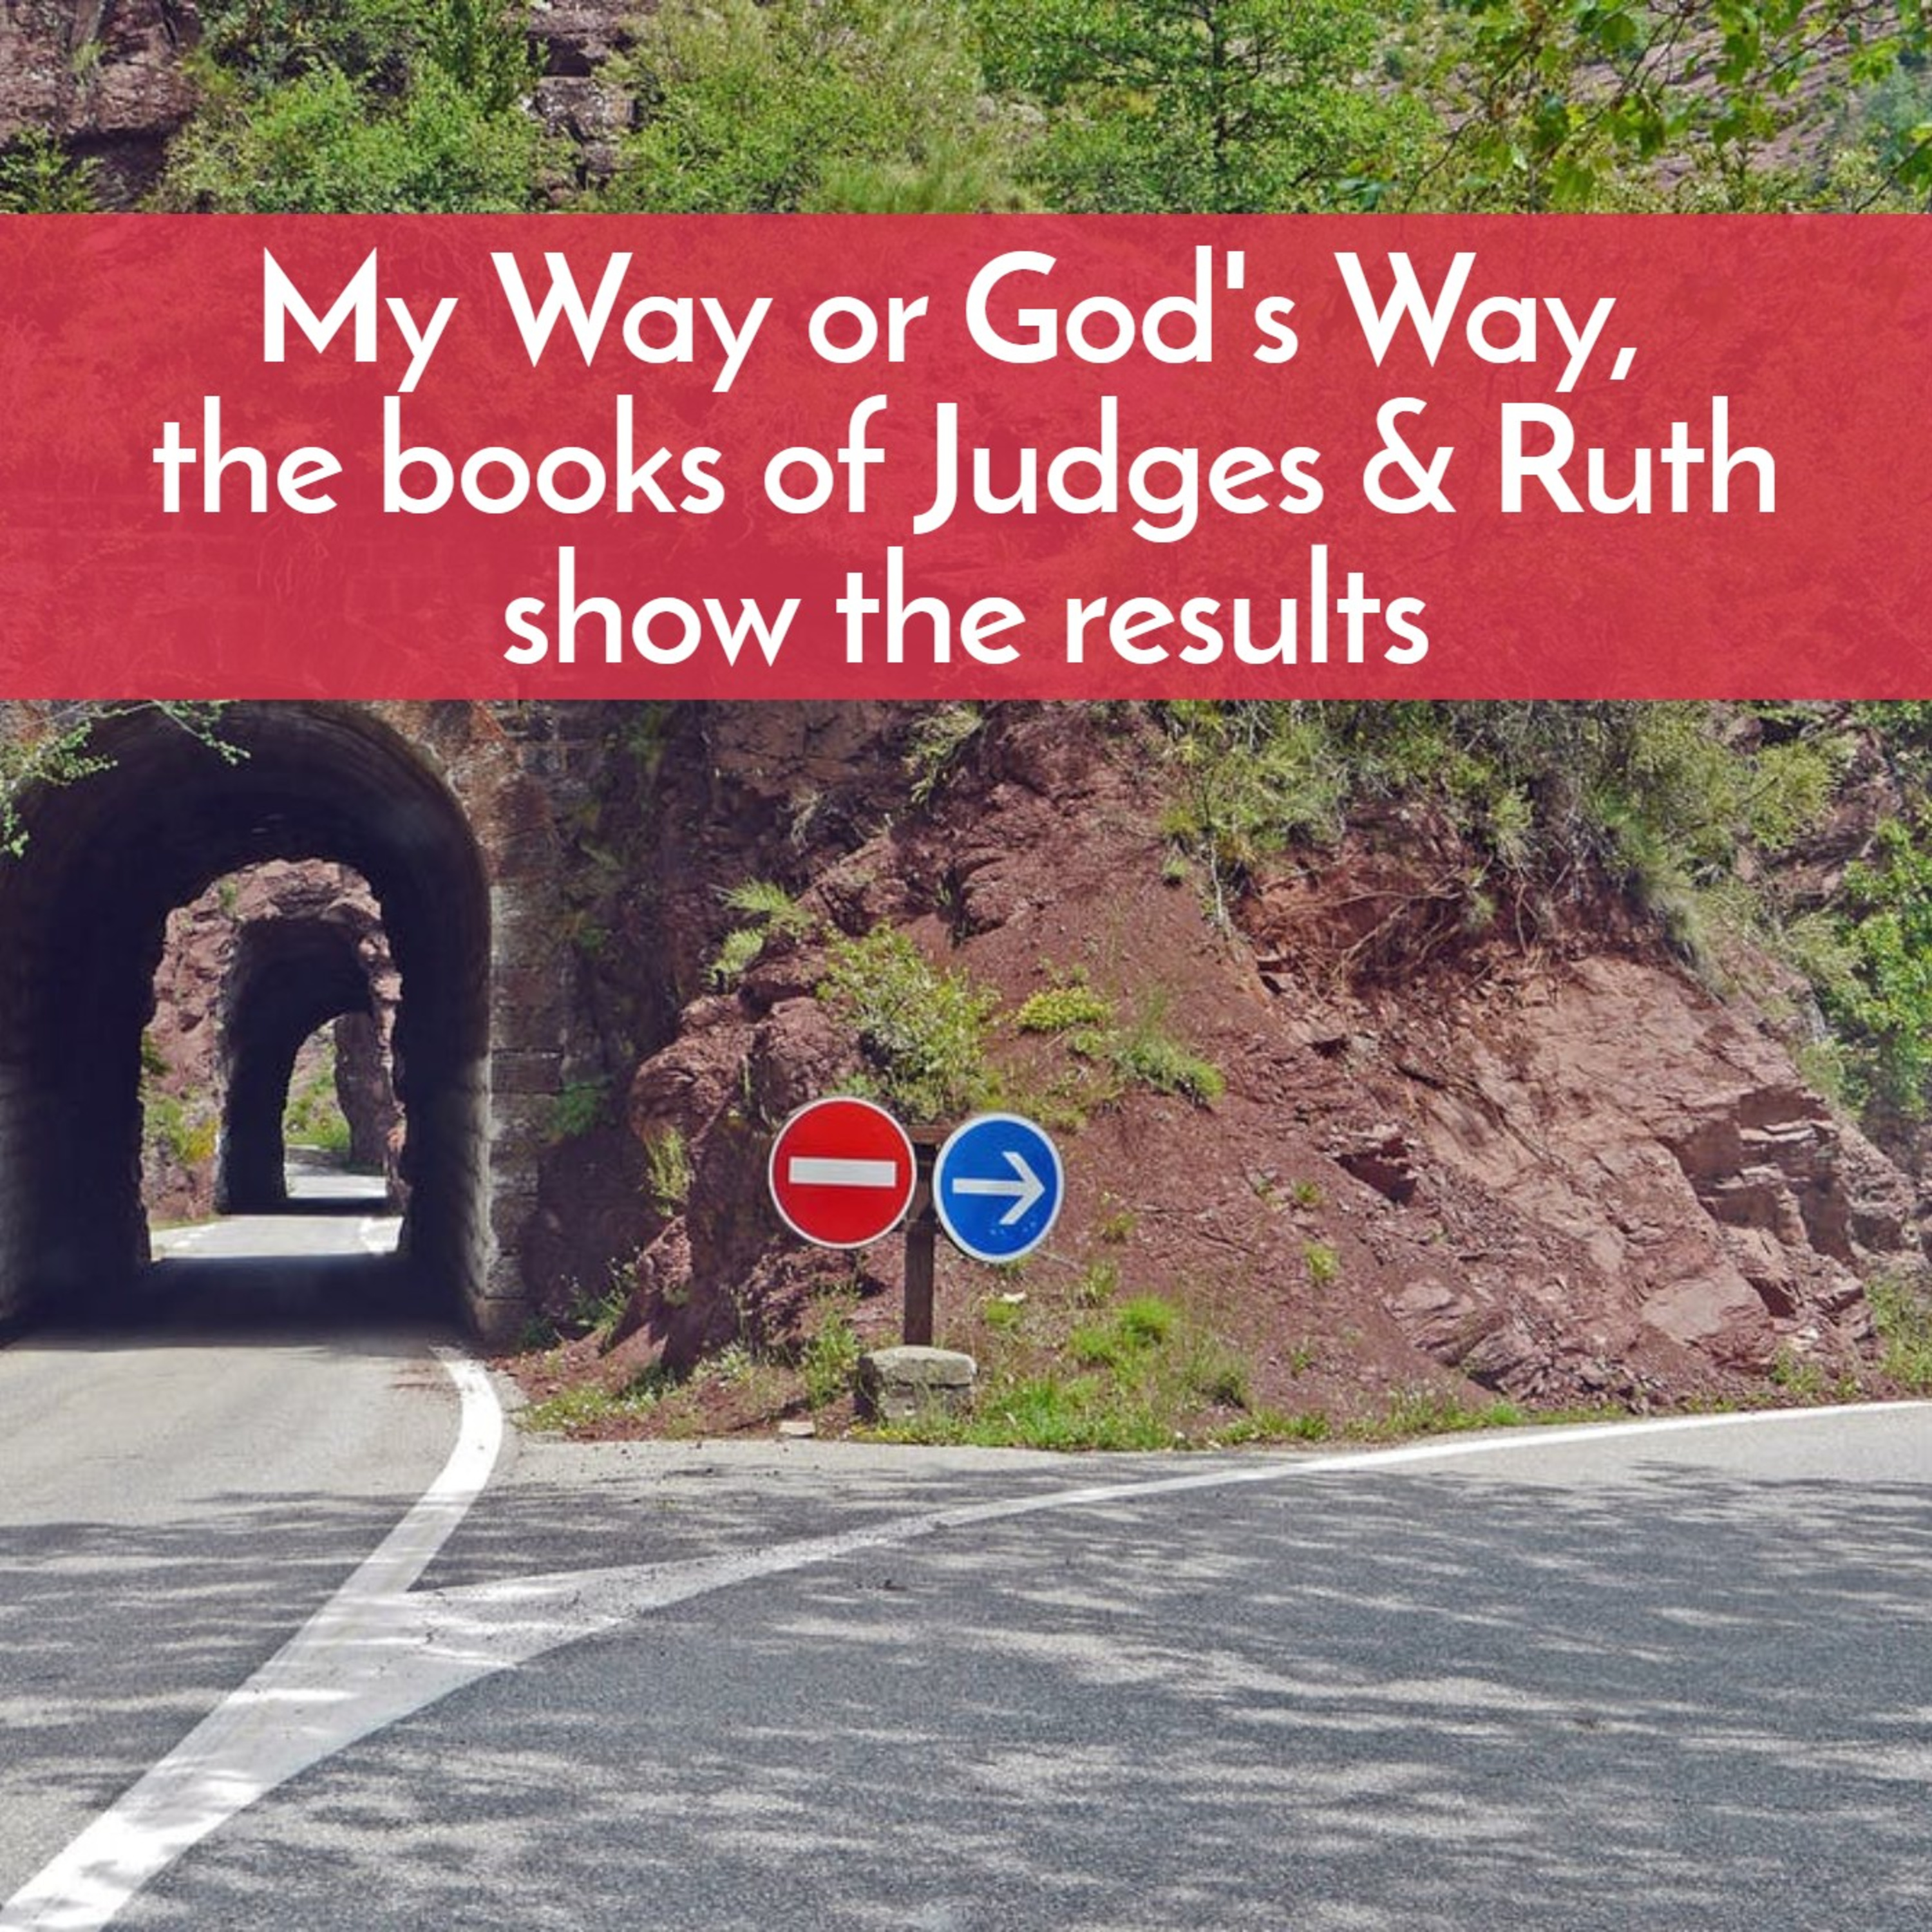 My Way or God's Way—books of Judges & Ruth shows us the results